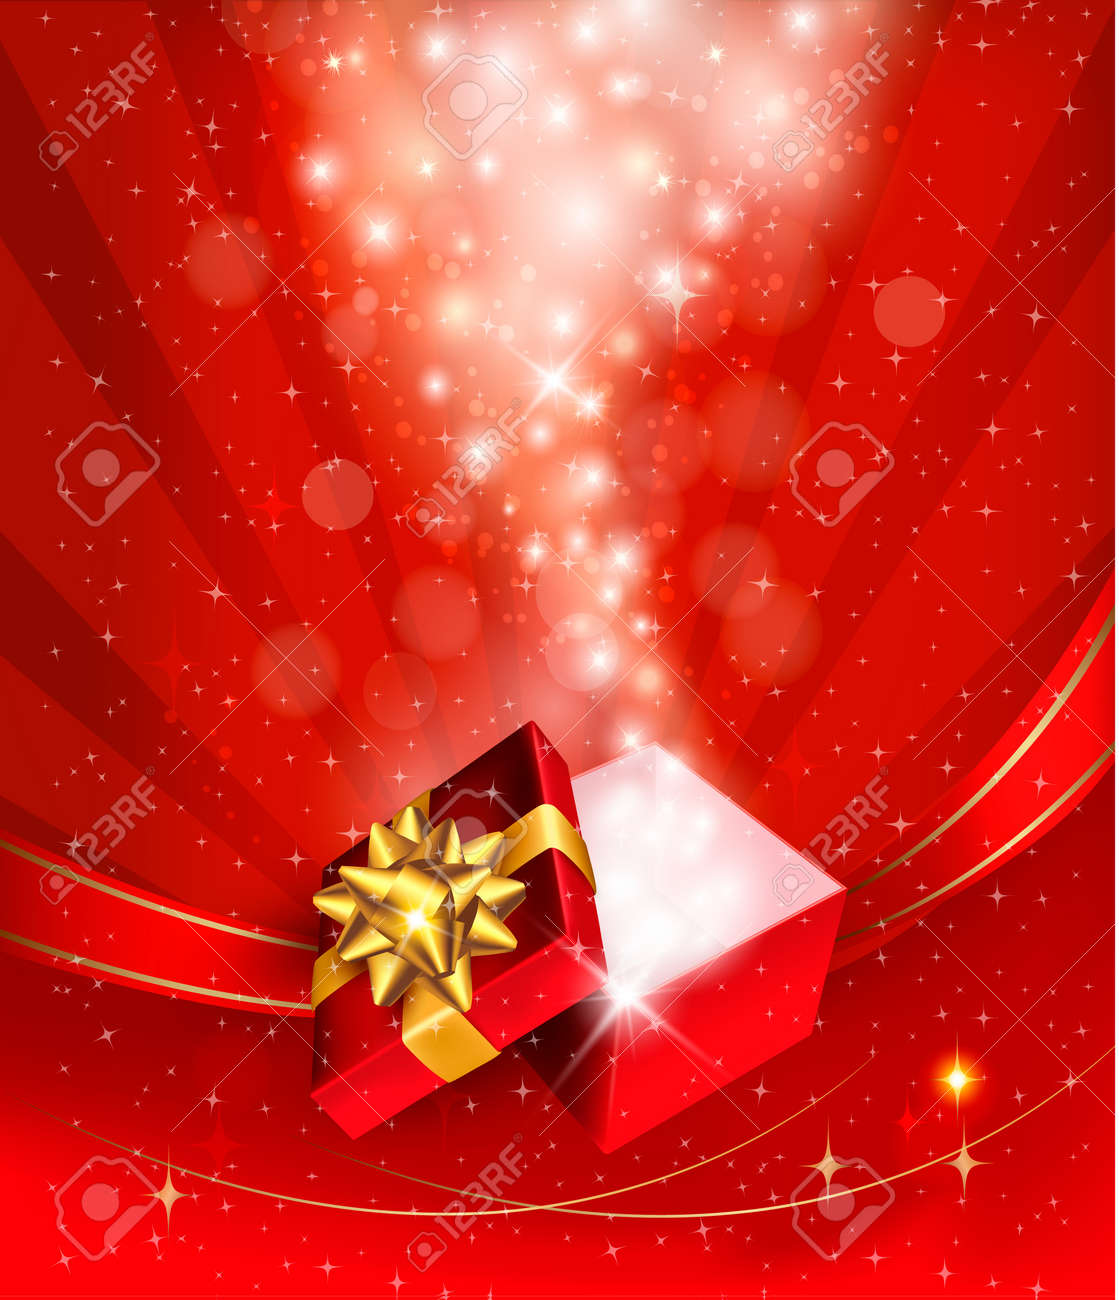 Christmas gift box clip art free vector download (223,917 Free vector) for  commercial use. format: ai, eps, cdr, svg vector illustration graphic art  design